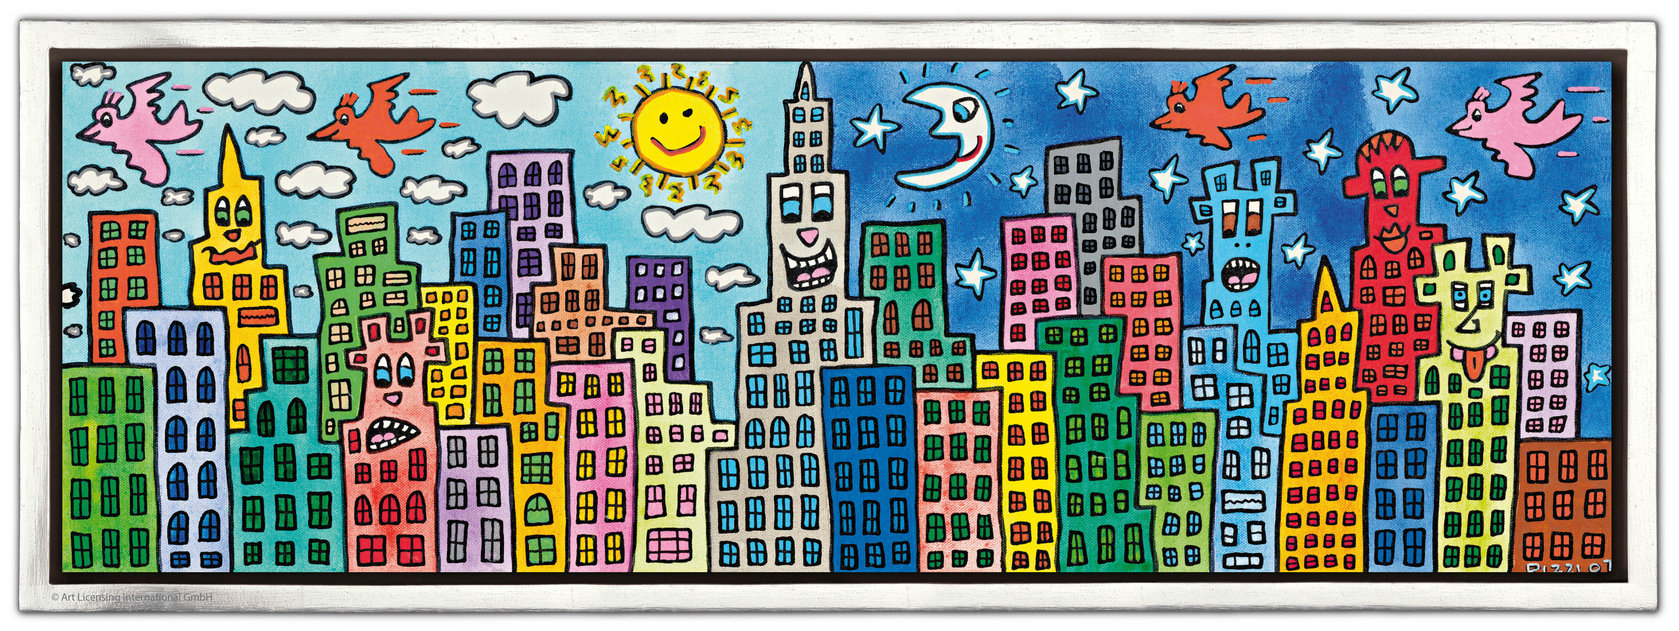 James Rizzi - MY CANDY-COLORED CITY OF LOVE